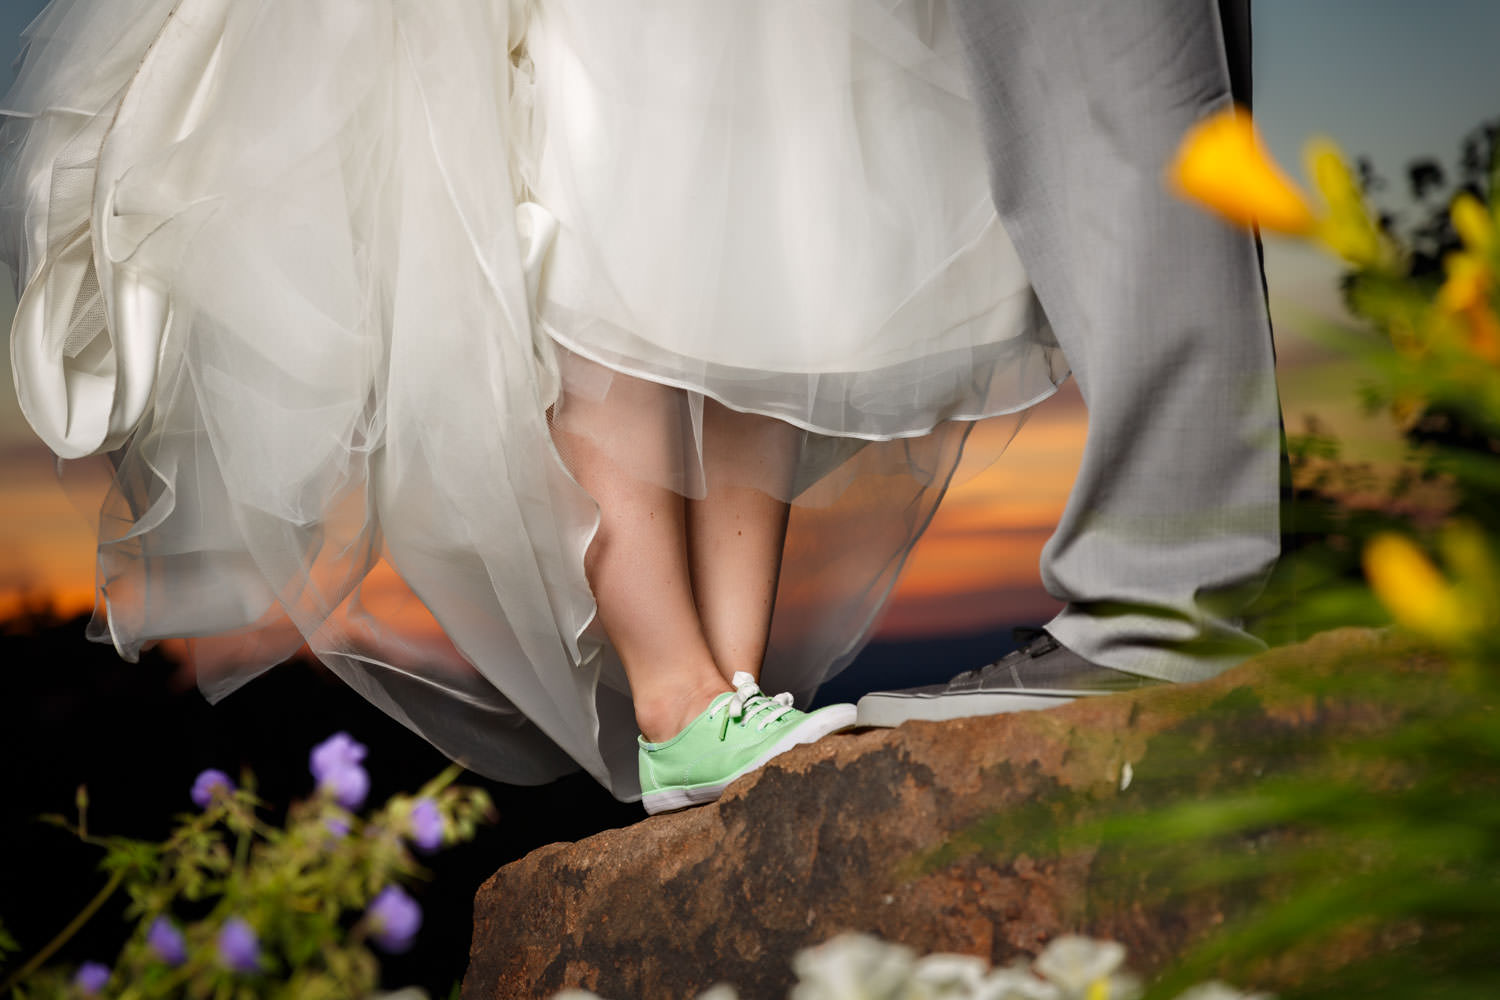 Quirky photo of bride and groom Keds tennis shoes with sunset background